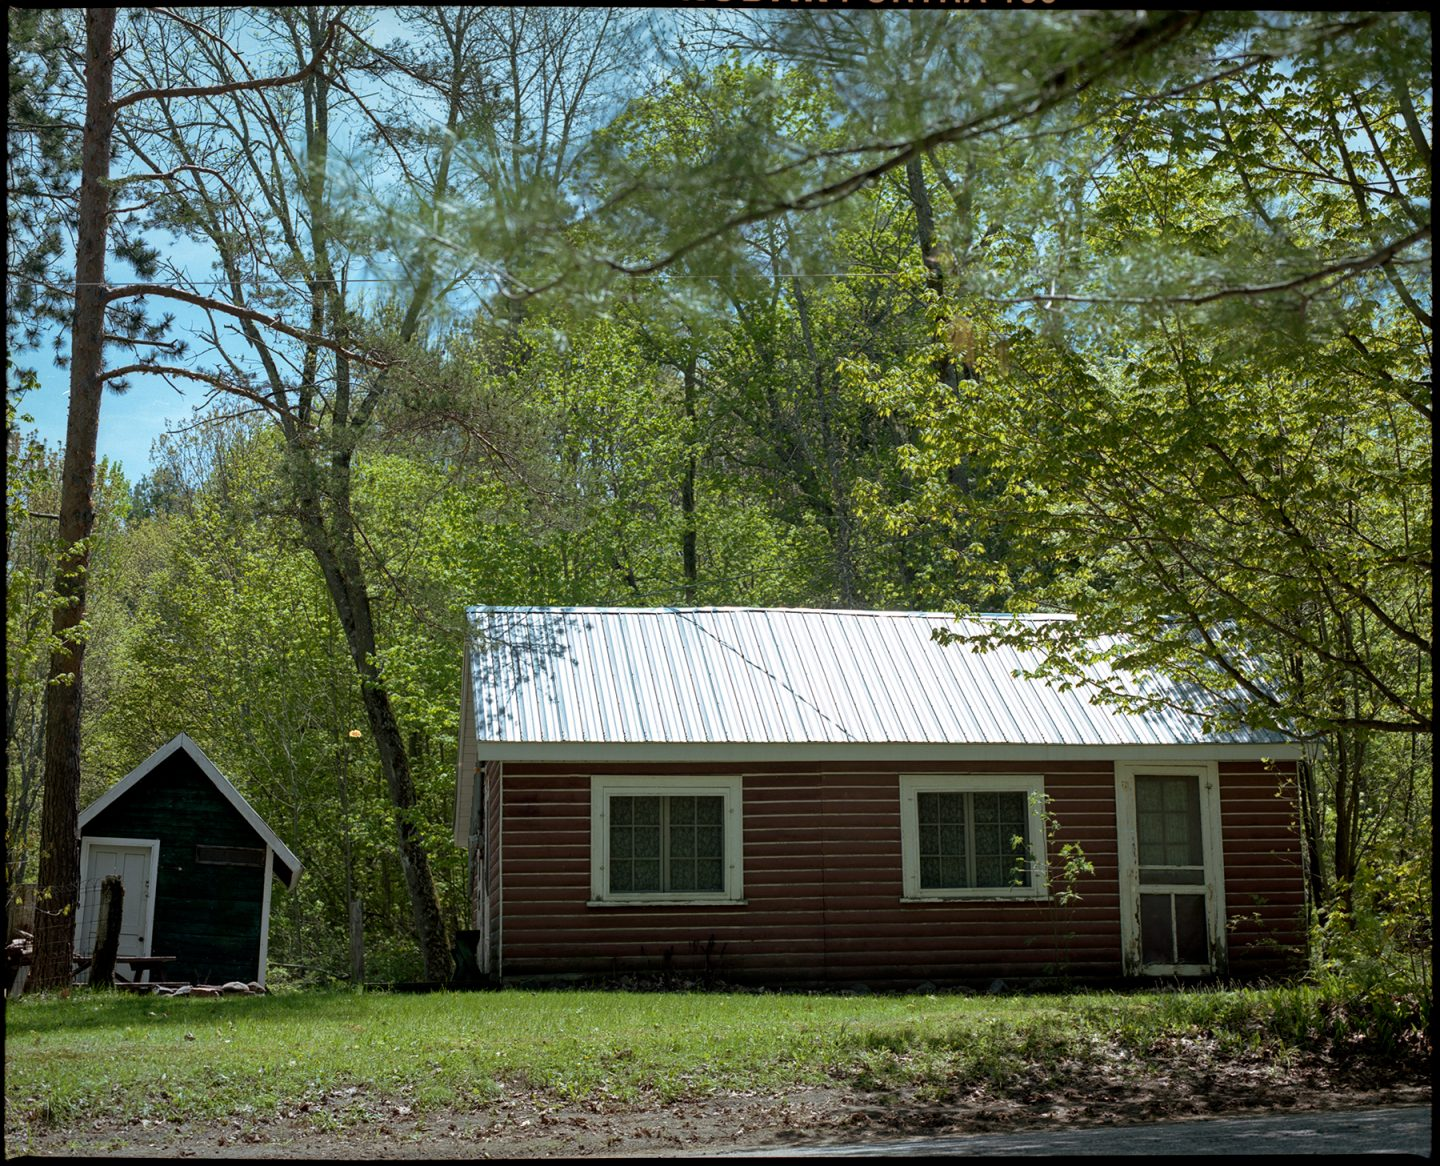 Collingwood Camping with the Mamiya RZ67